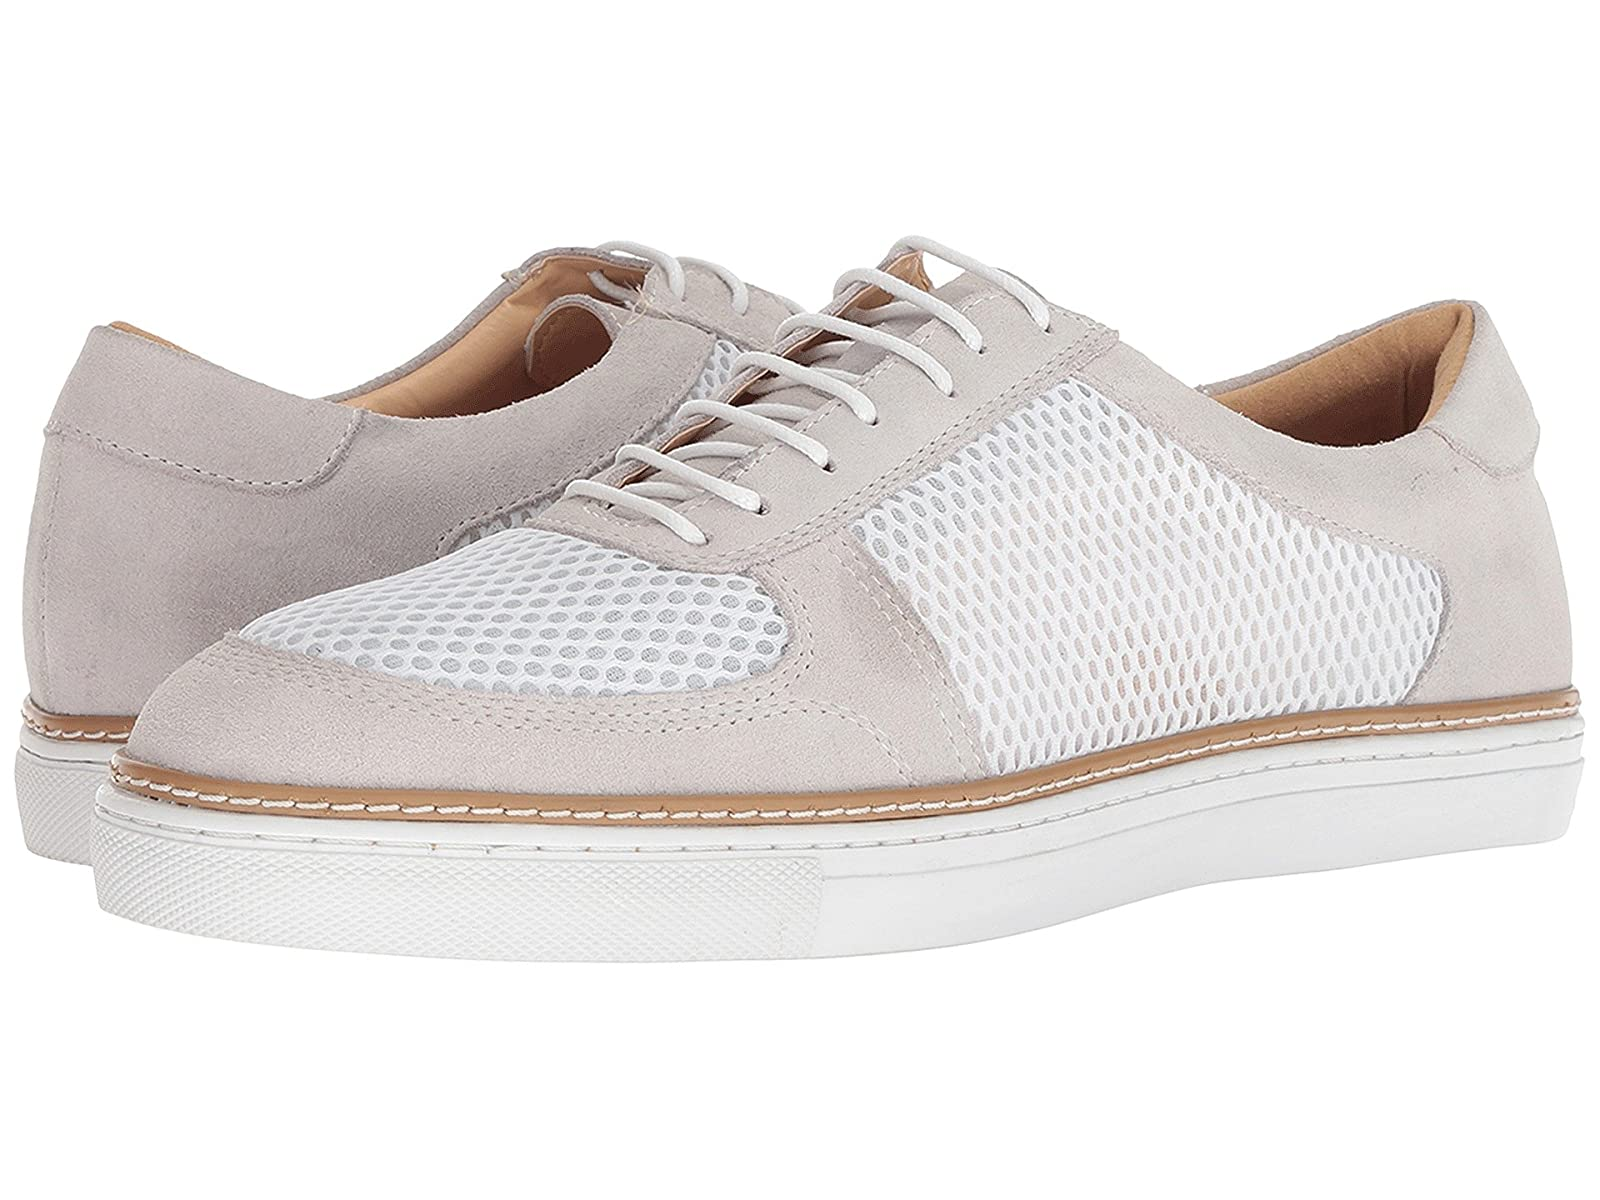 English Laundry LandseerCheap and distinctive eye-catching shoes